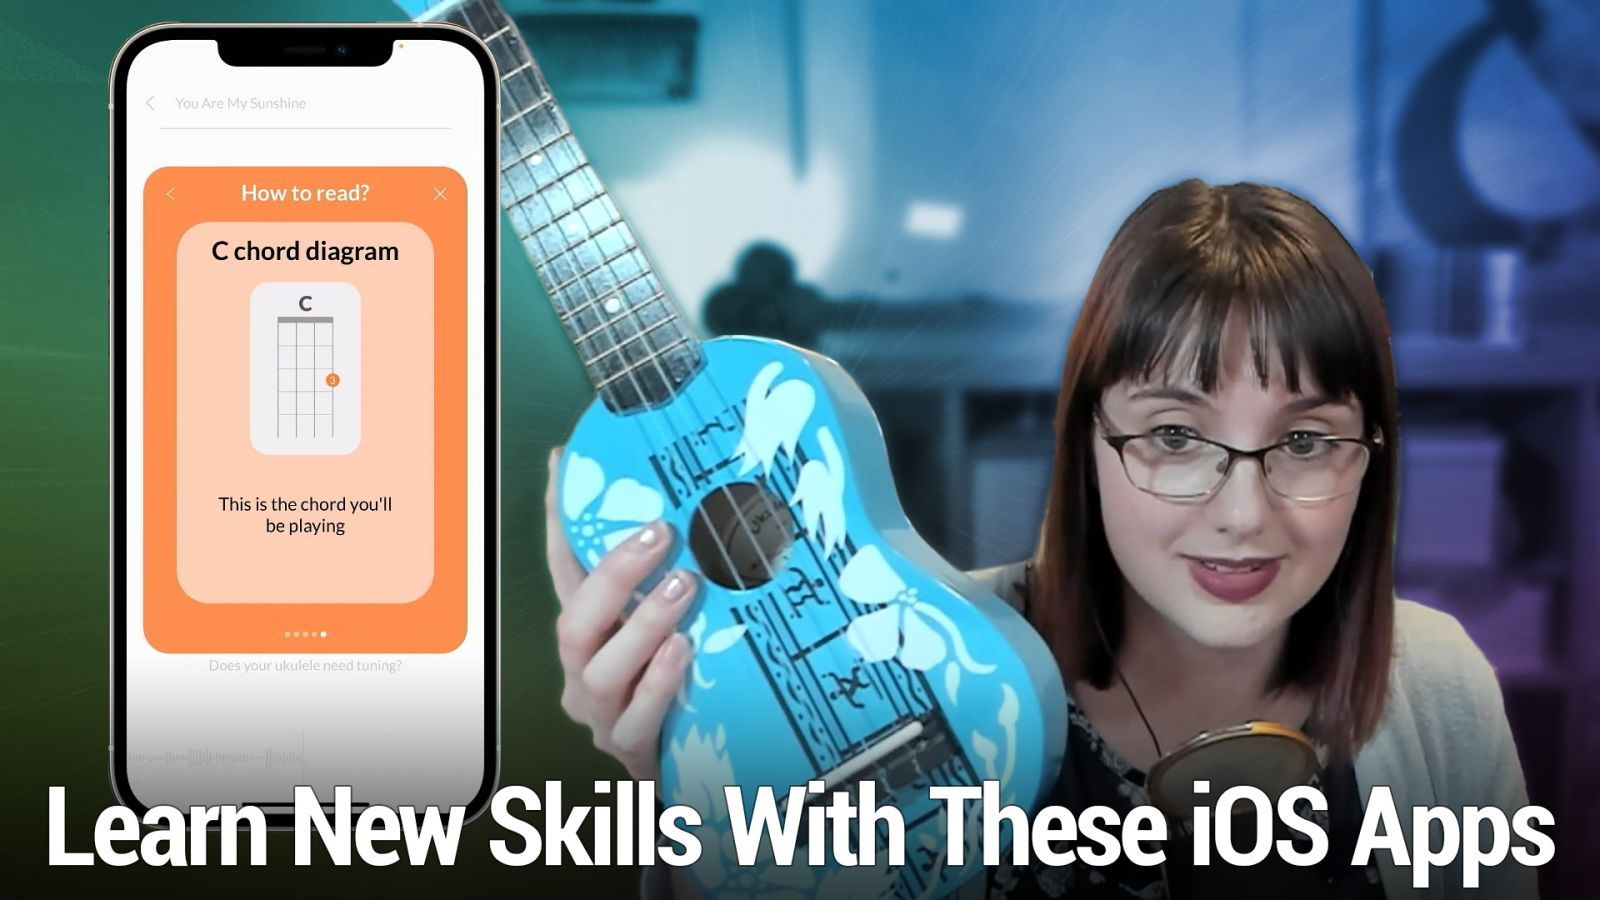 iOS 554: Learn New Skills With These iOS Apps - Kitchen Stories, Astound, Ukulele, Puppr, and more